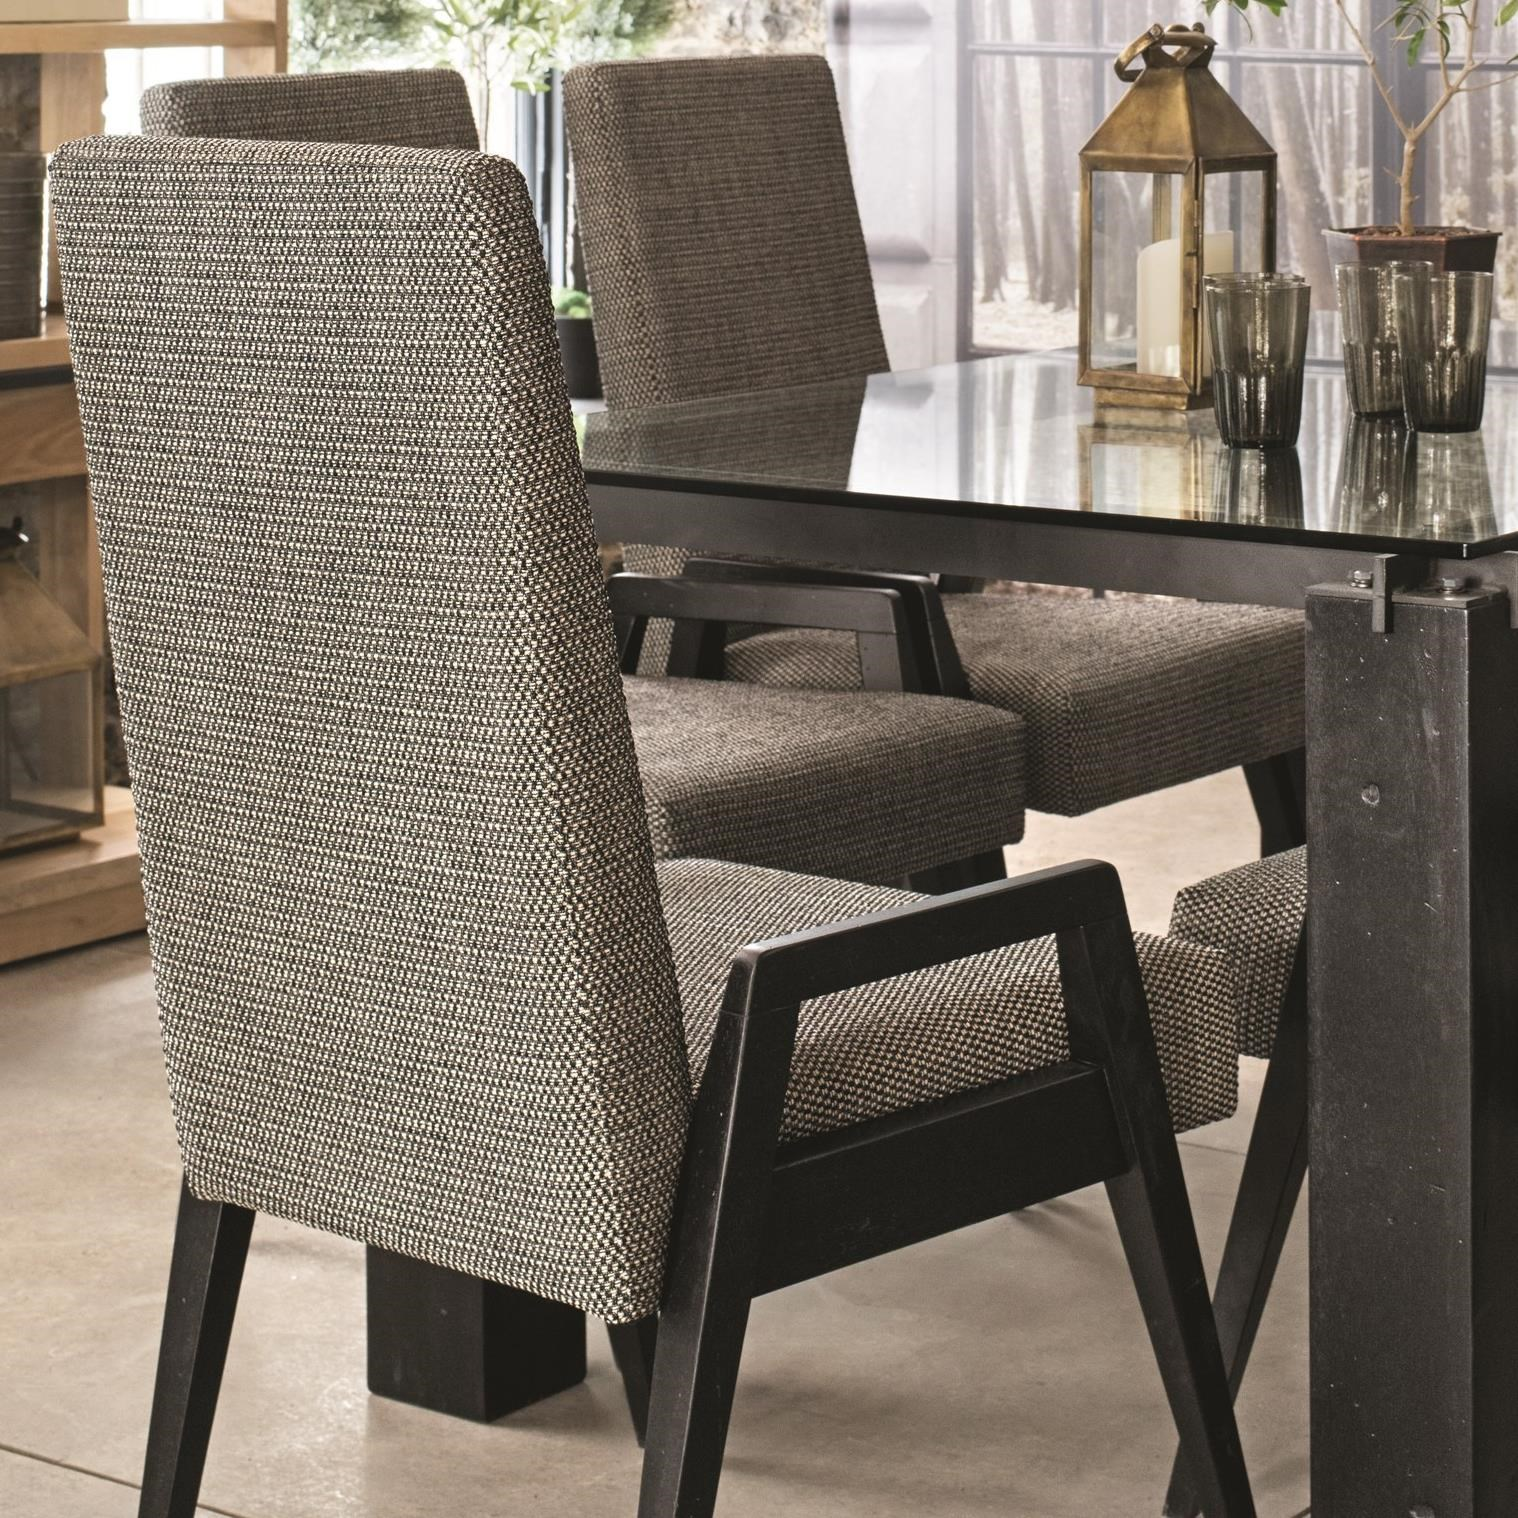 East Side Customizable Dining Arm Chair by Canadel at Dinette Depot